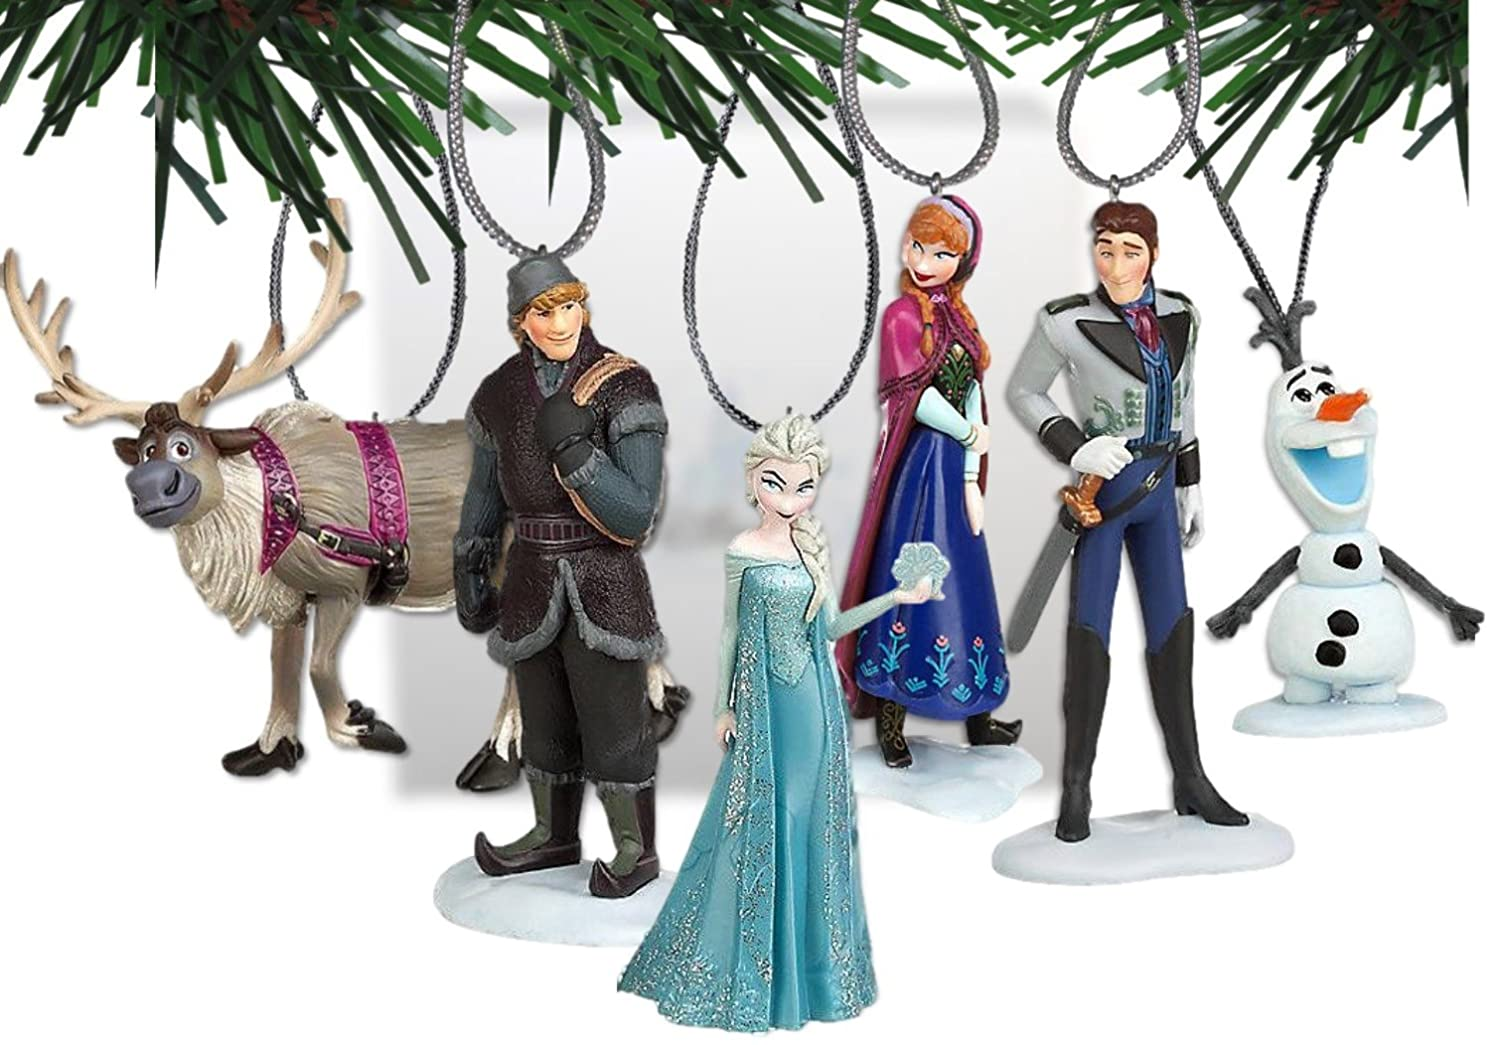 Amazon.com: Disney's Frozen Holiday Ornament Set- (6) PVC Figure ...